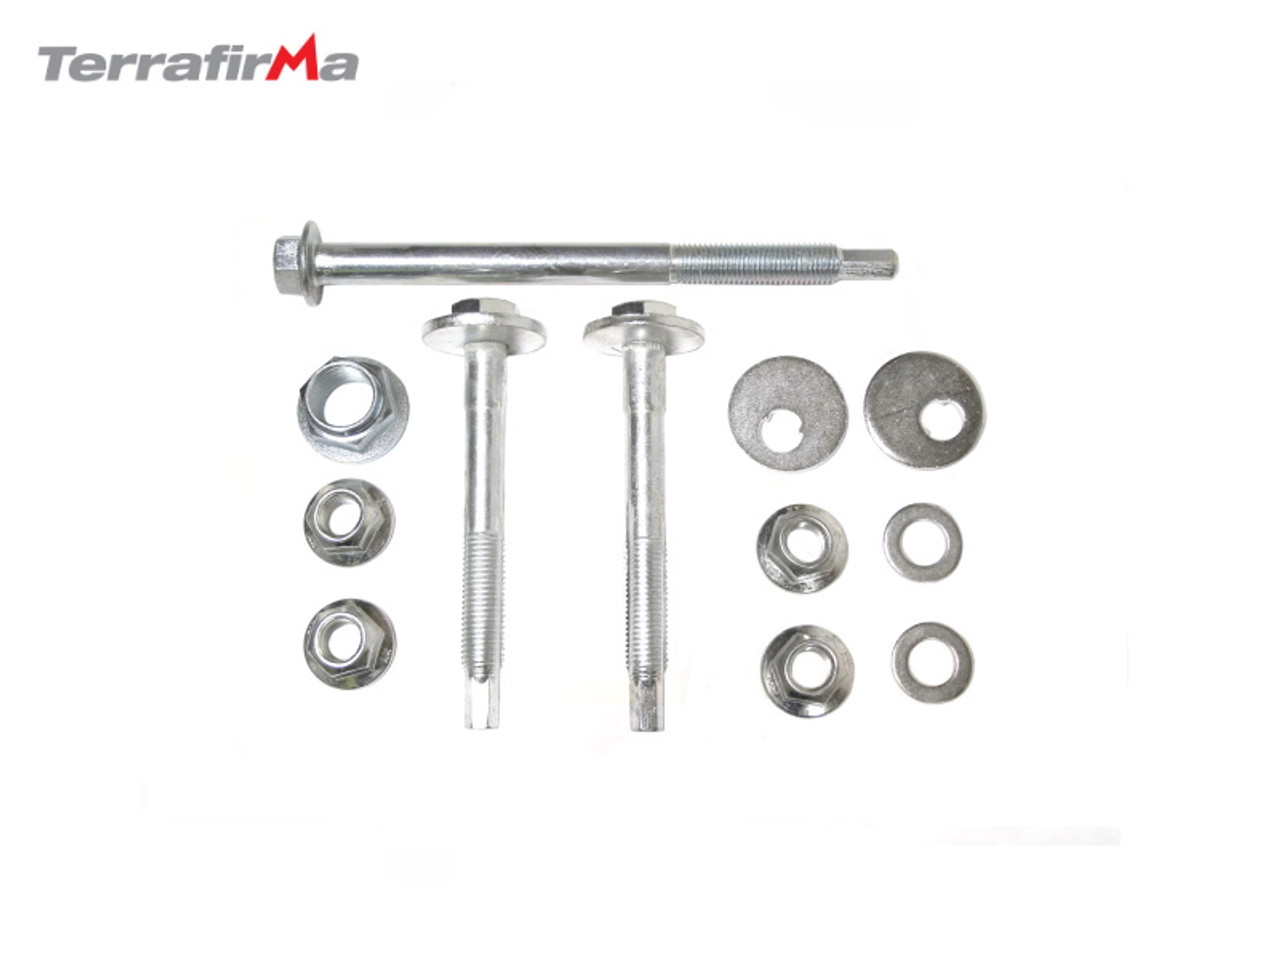 Terrafirma Front Lower Suspension Arm Fitting Kit For Discovery 3/4 And Range Rover Sport